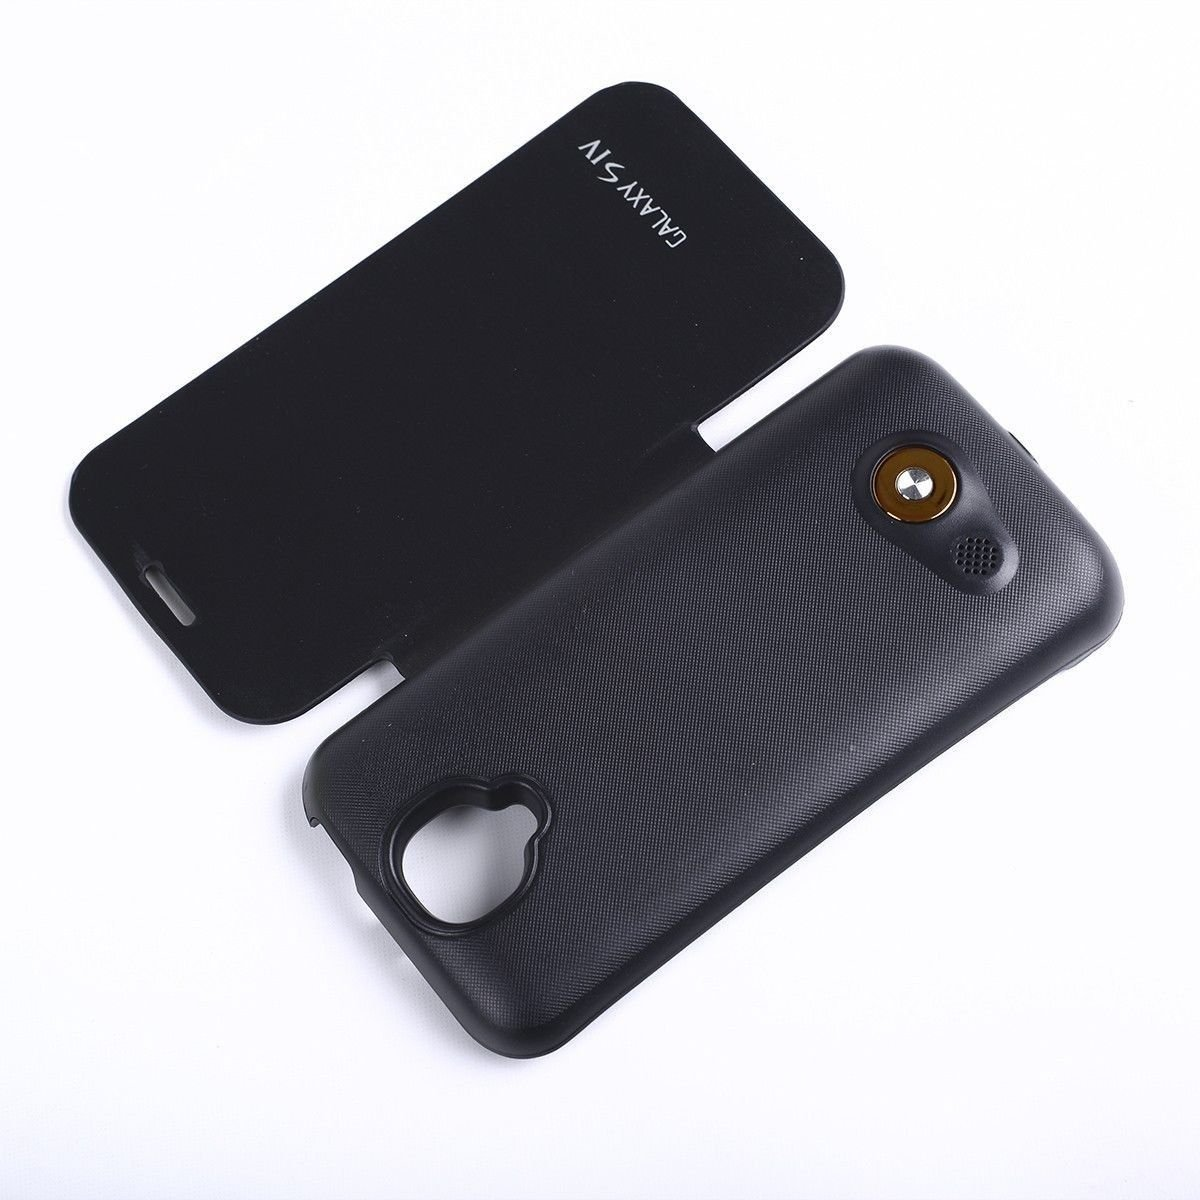 New 3200mAh Power Bank External Battery Case For SAMSUNG SIV i9500